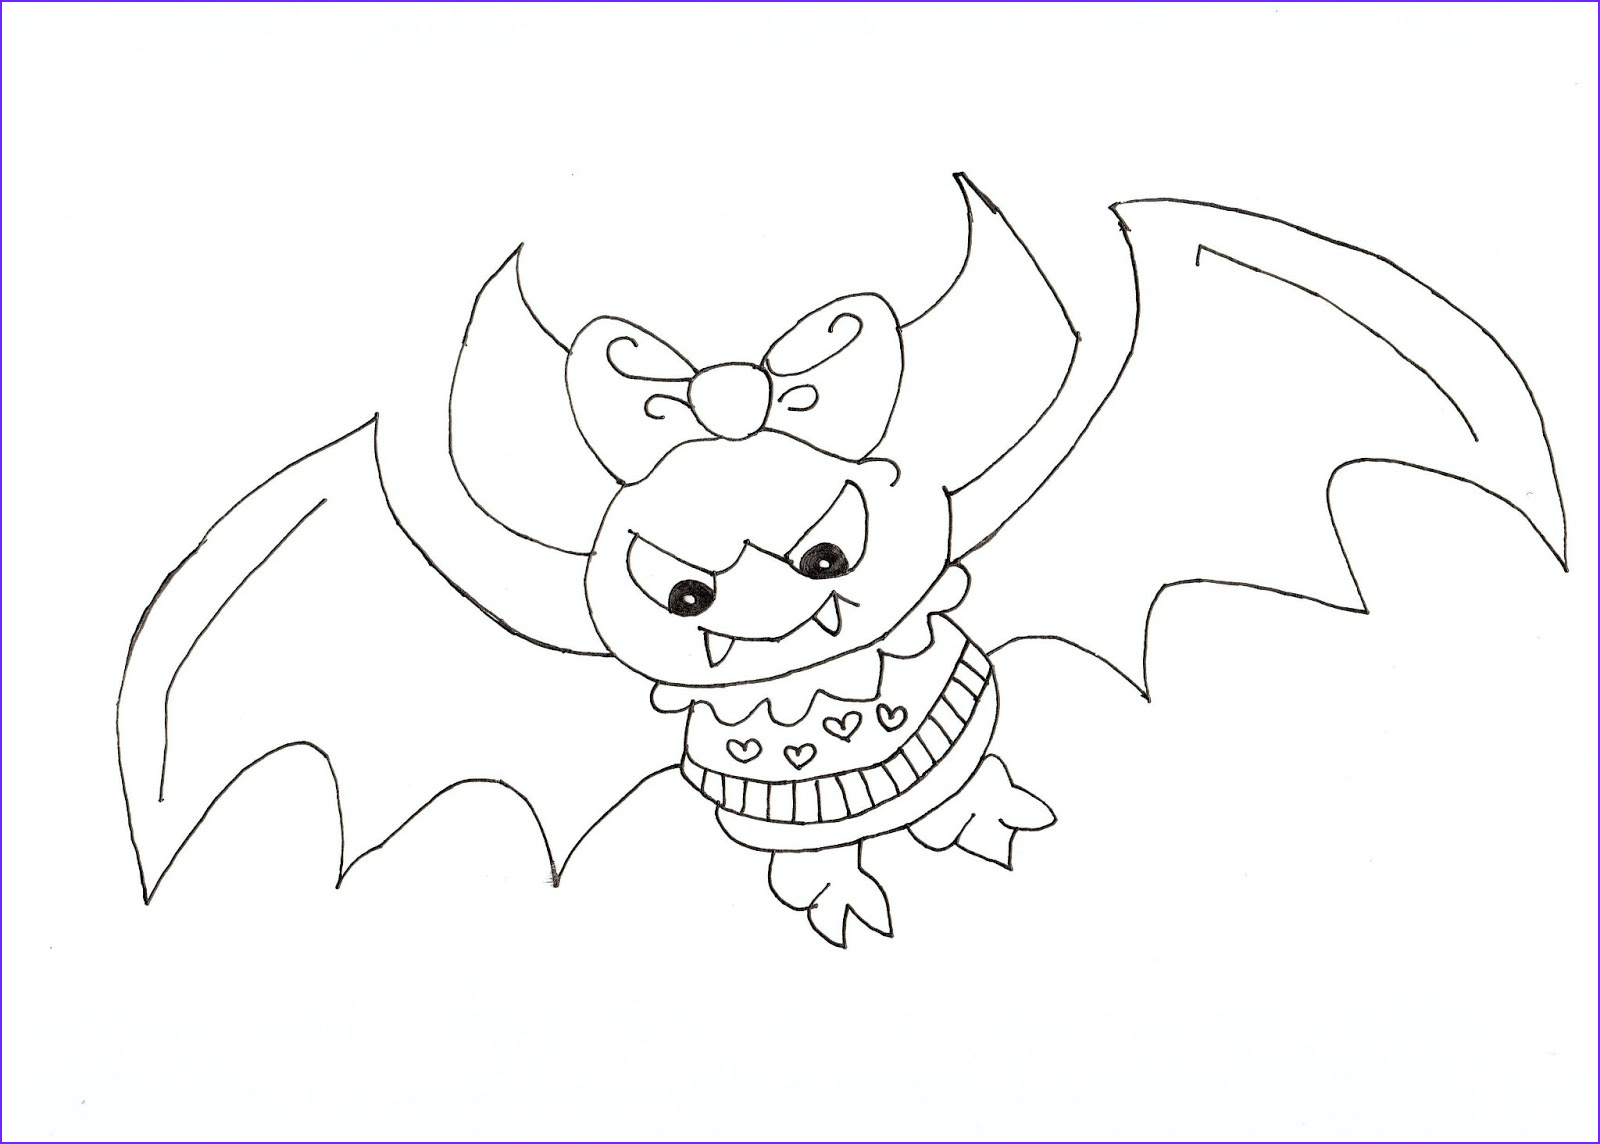 Monster High Coloring Pages Pdf Best Of Gallery Free Printable Monster High Coloring Pages Count Fabulous